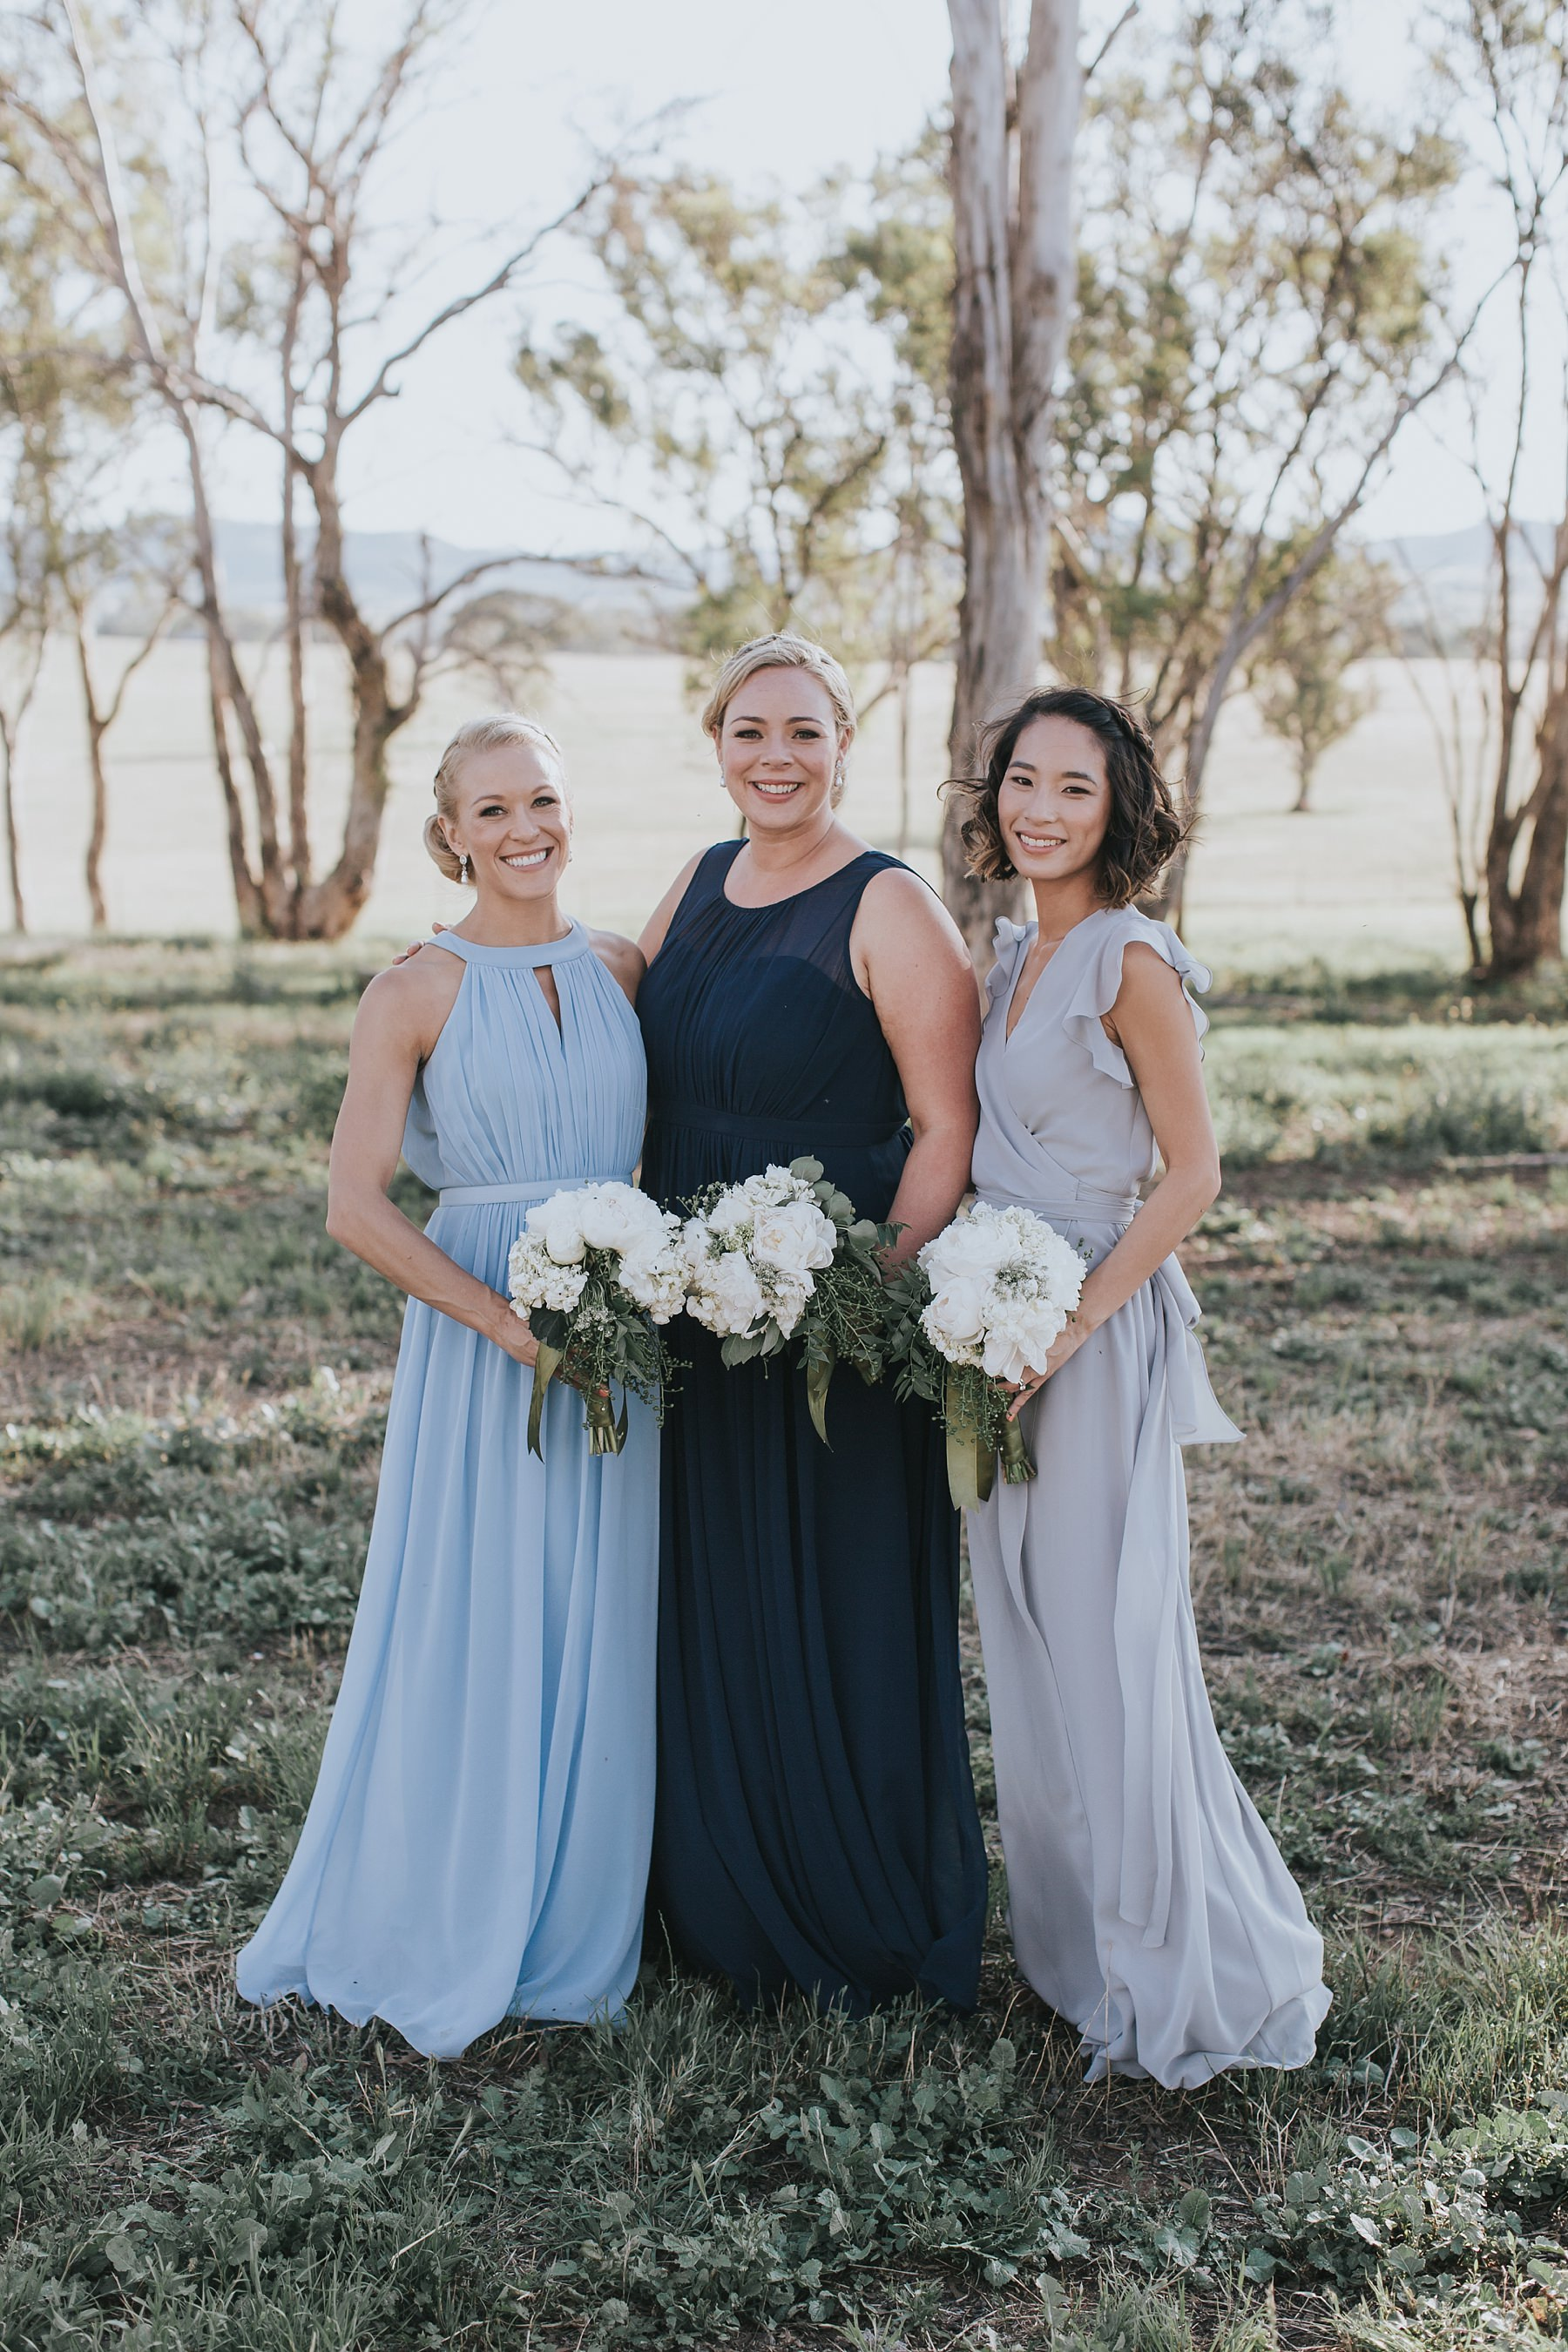 beautiful bridesmaids in country nsw wedding